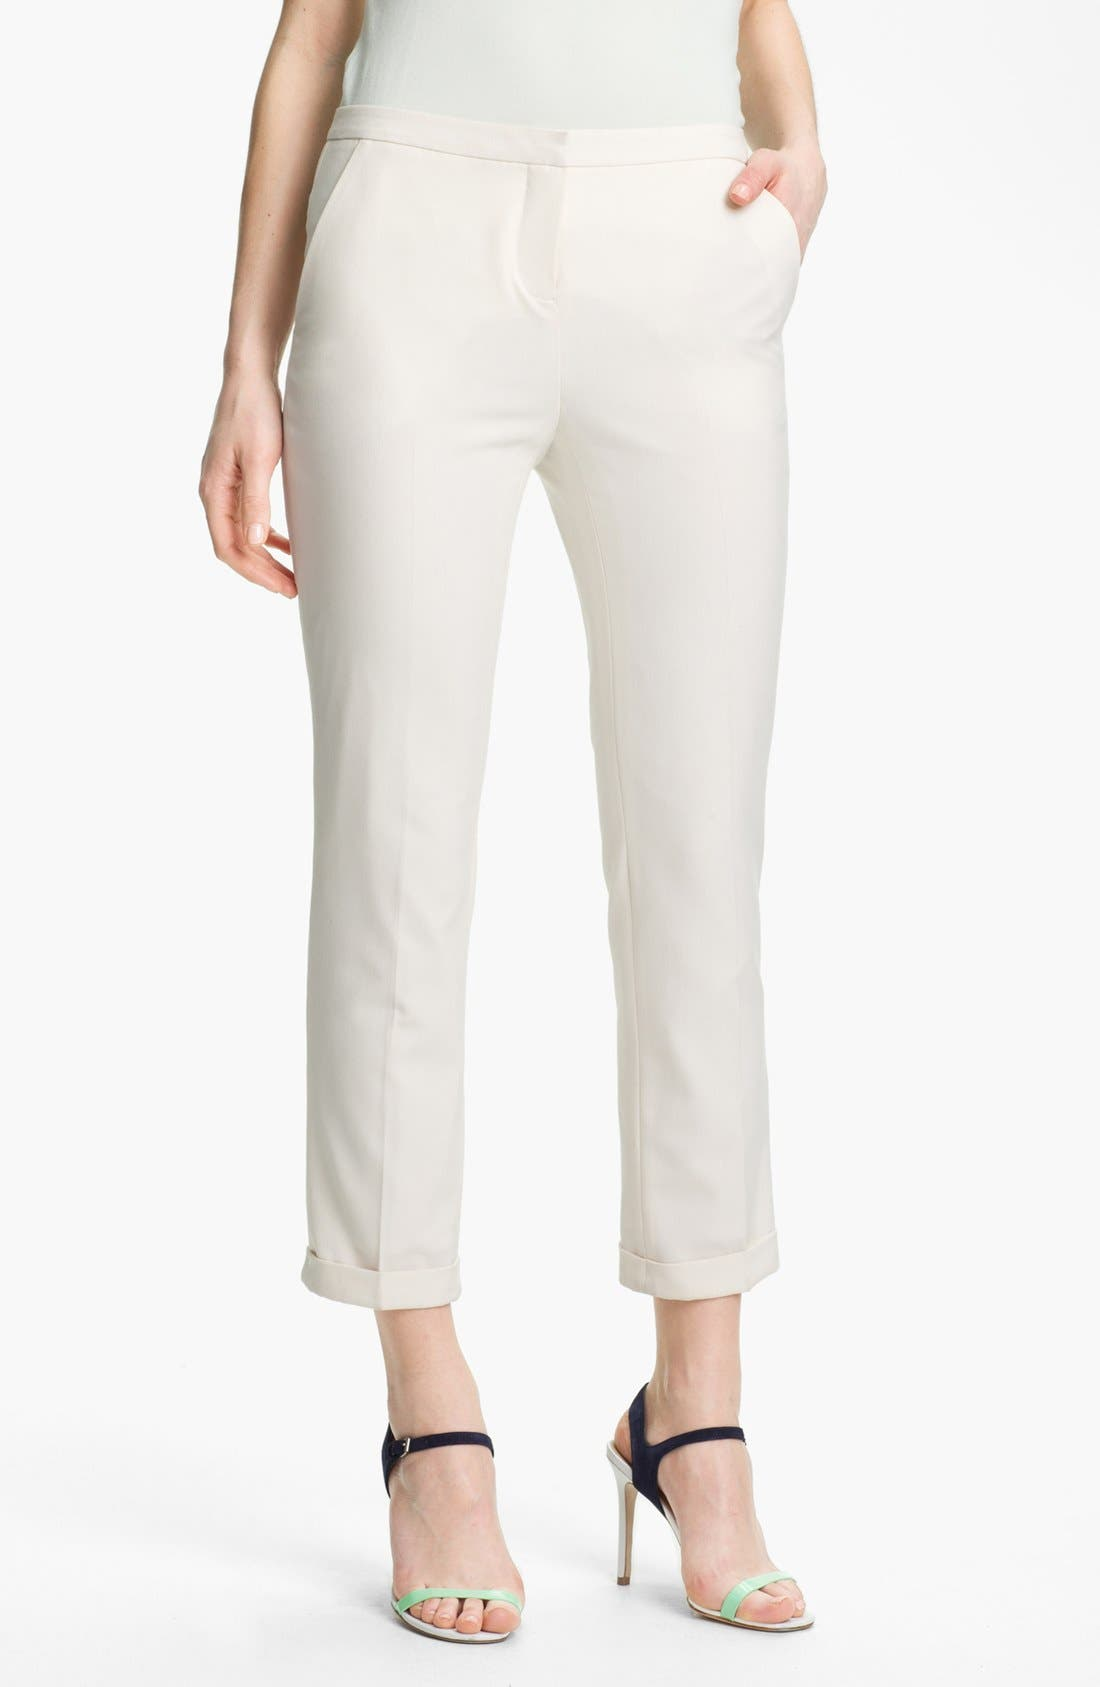 Alternate Image 1 Selected - Vince Camuto Cuffed Skinny Ankle Pants